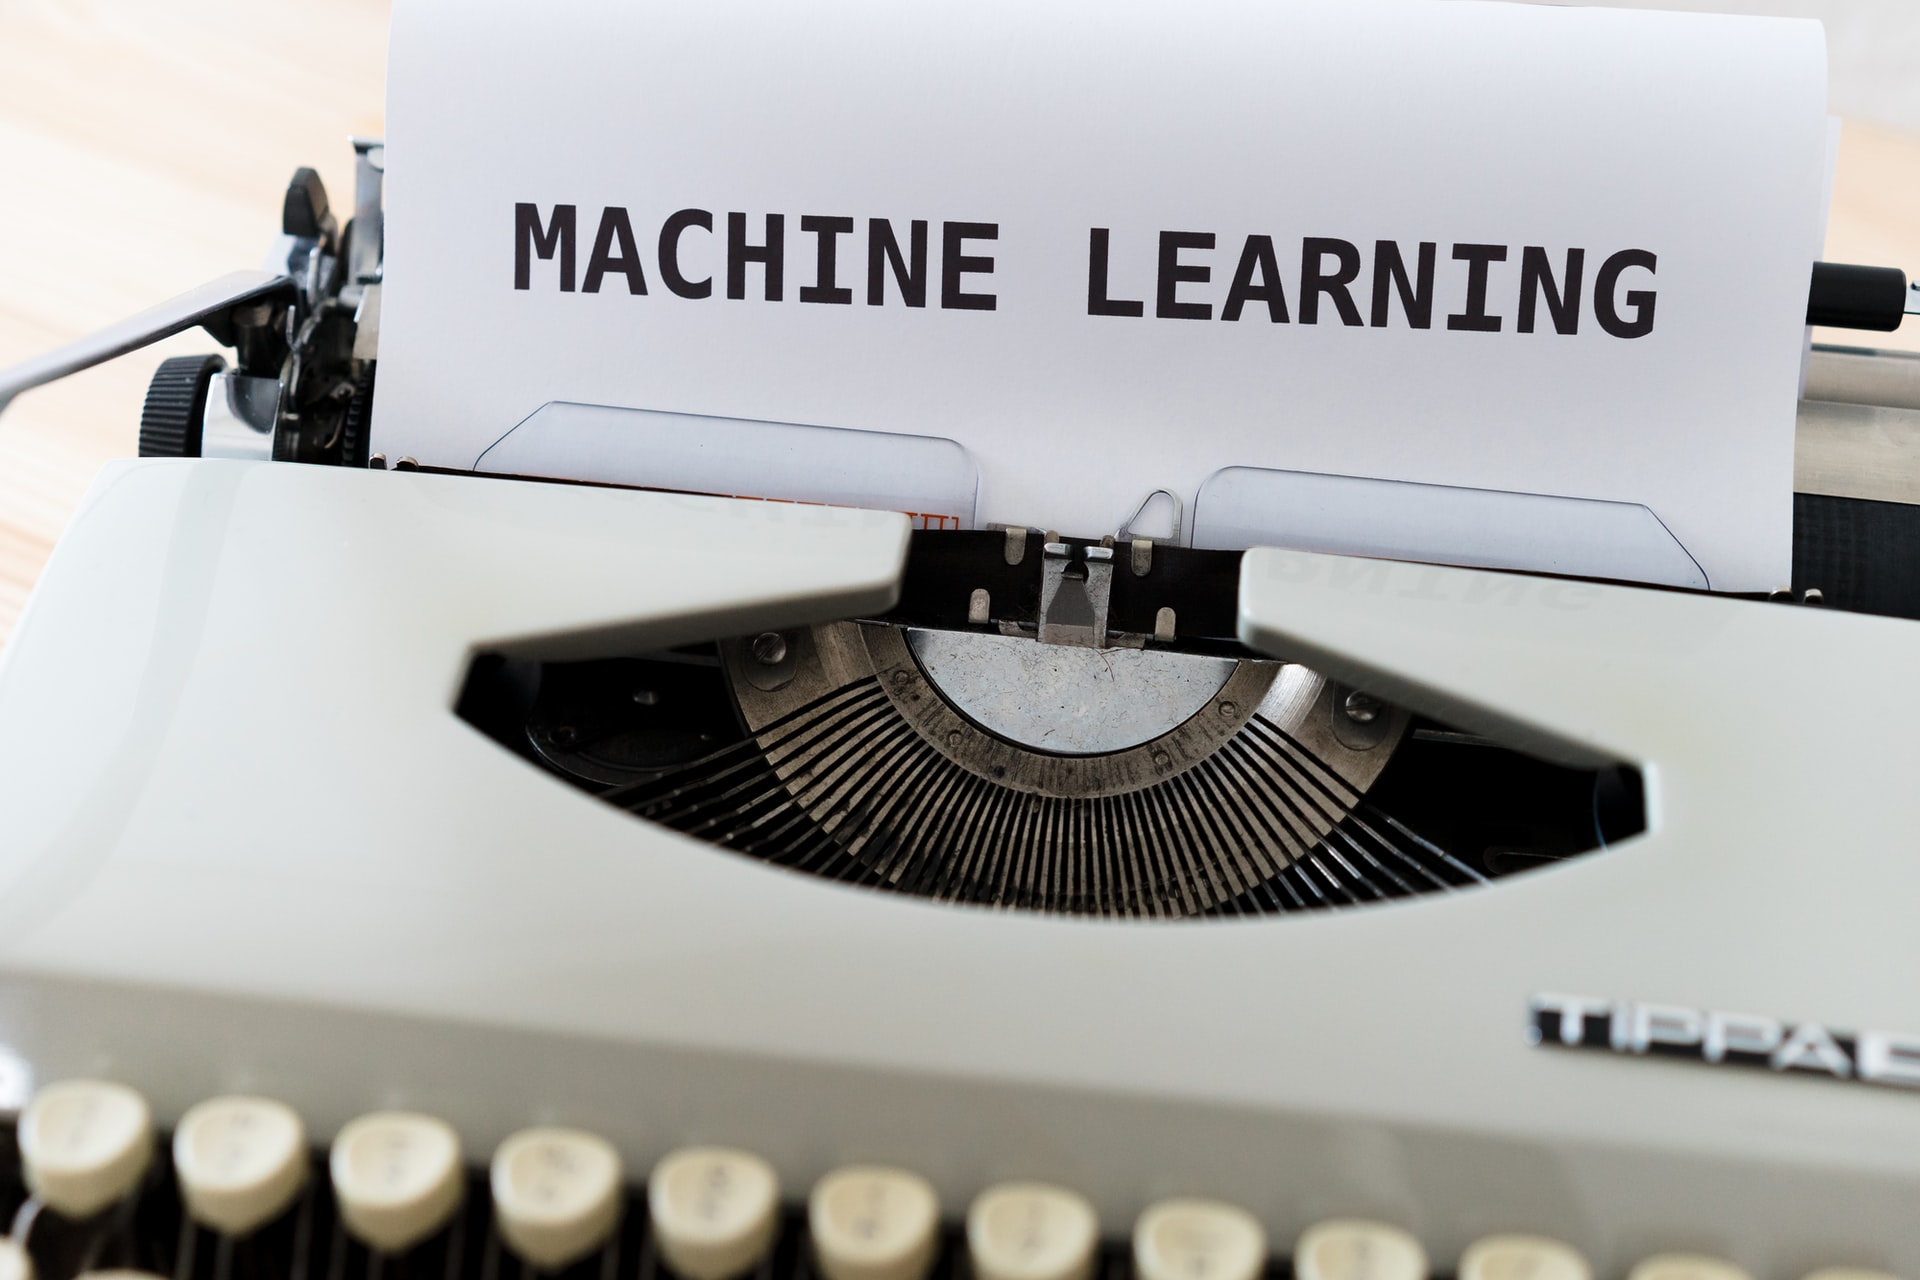 What Is Machine Learning, And Where Do We Use It?